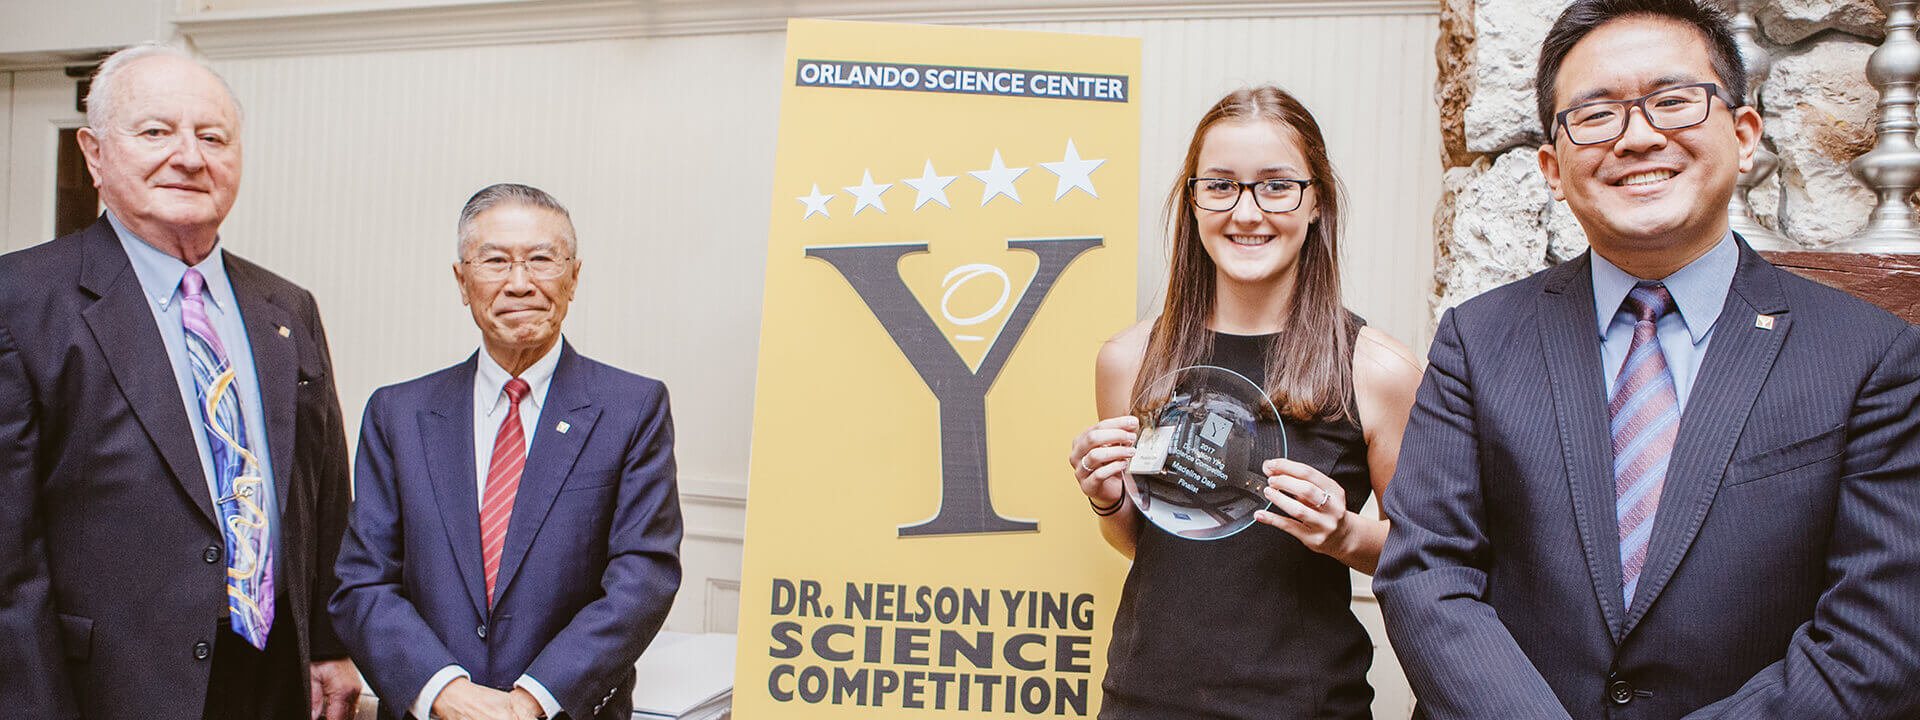 A high school student smiles with her award at the Dr. Nelson Ying Science Competition.